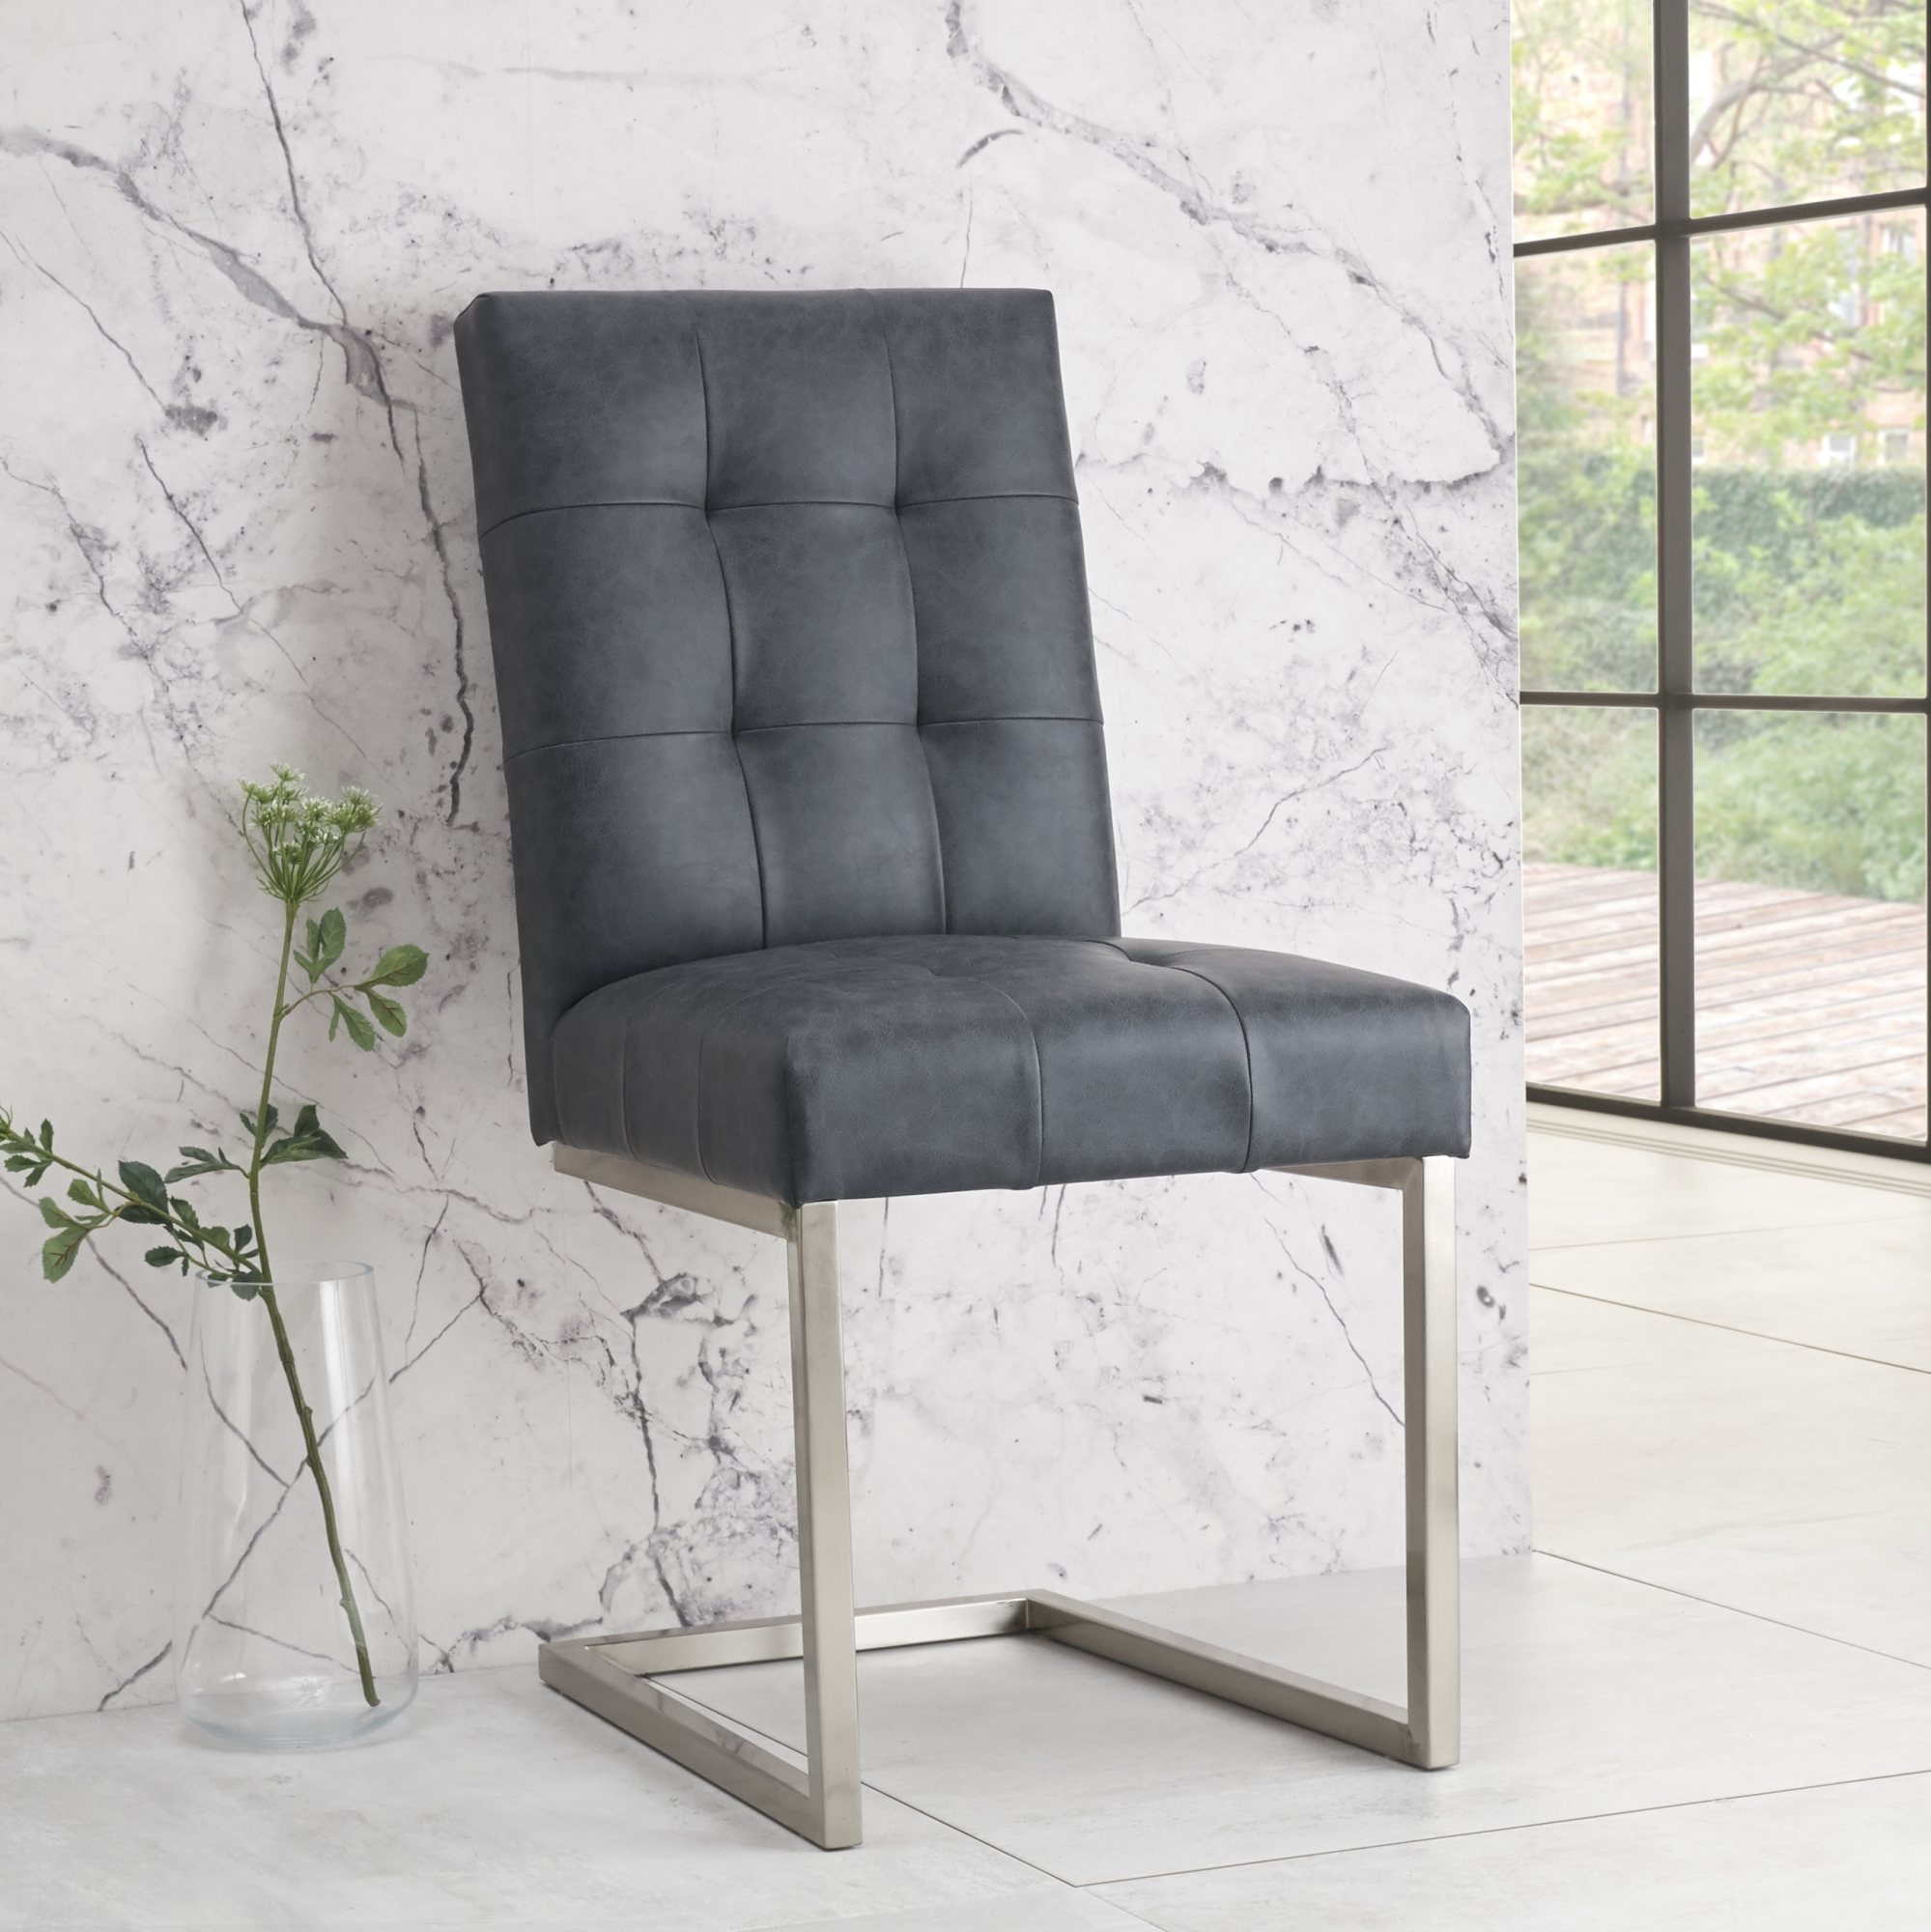 BRINDISI CANTER CHAIR - DARK NAVY BONDED LEATHER